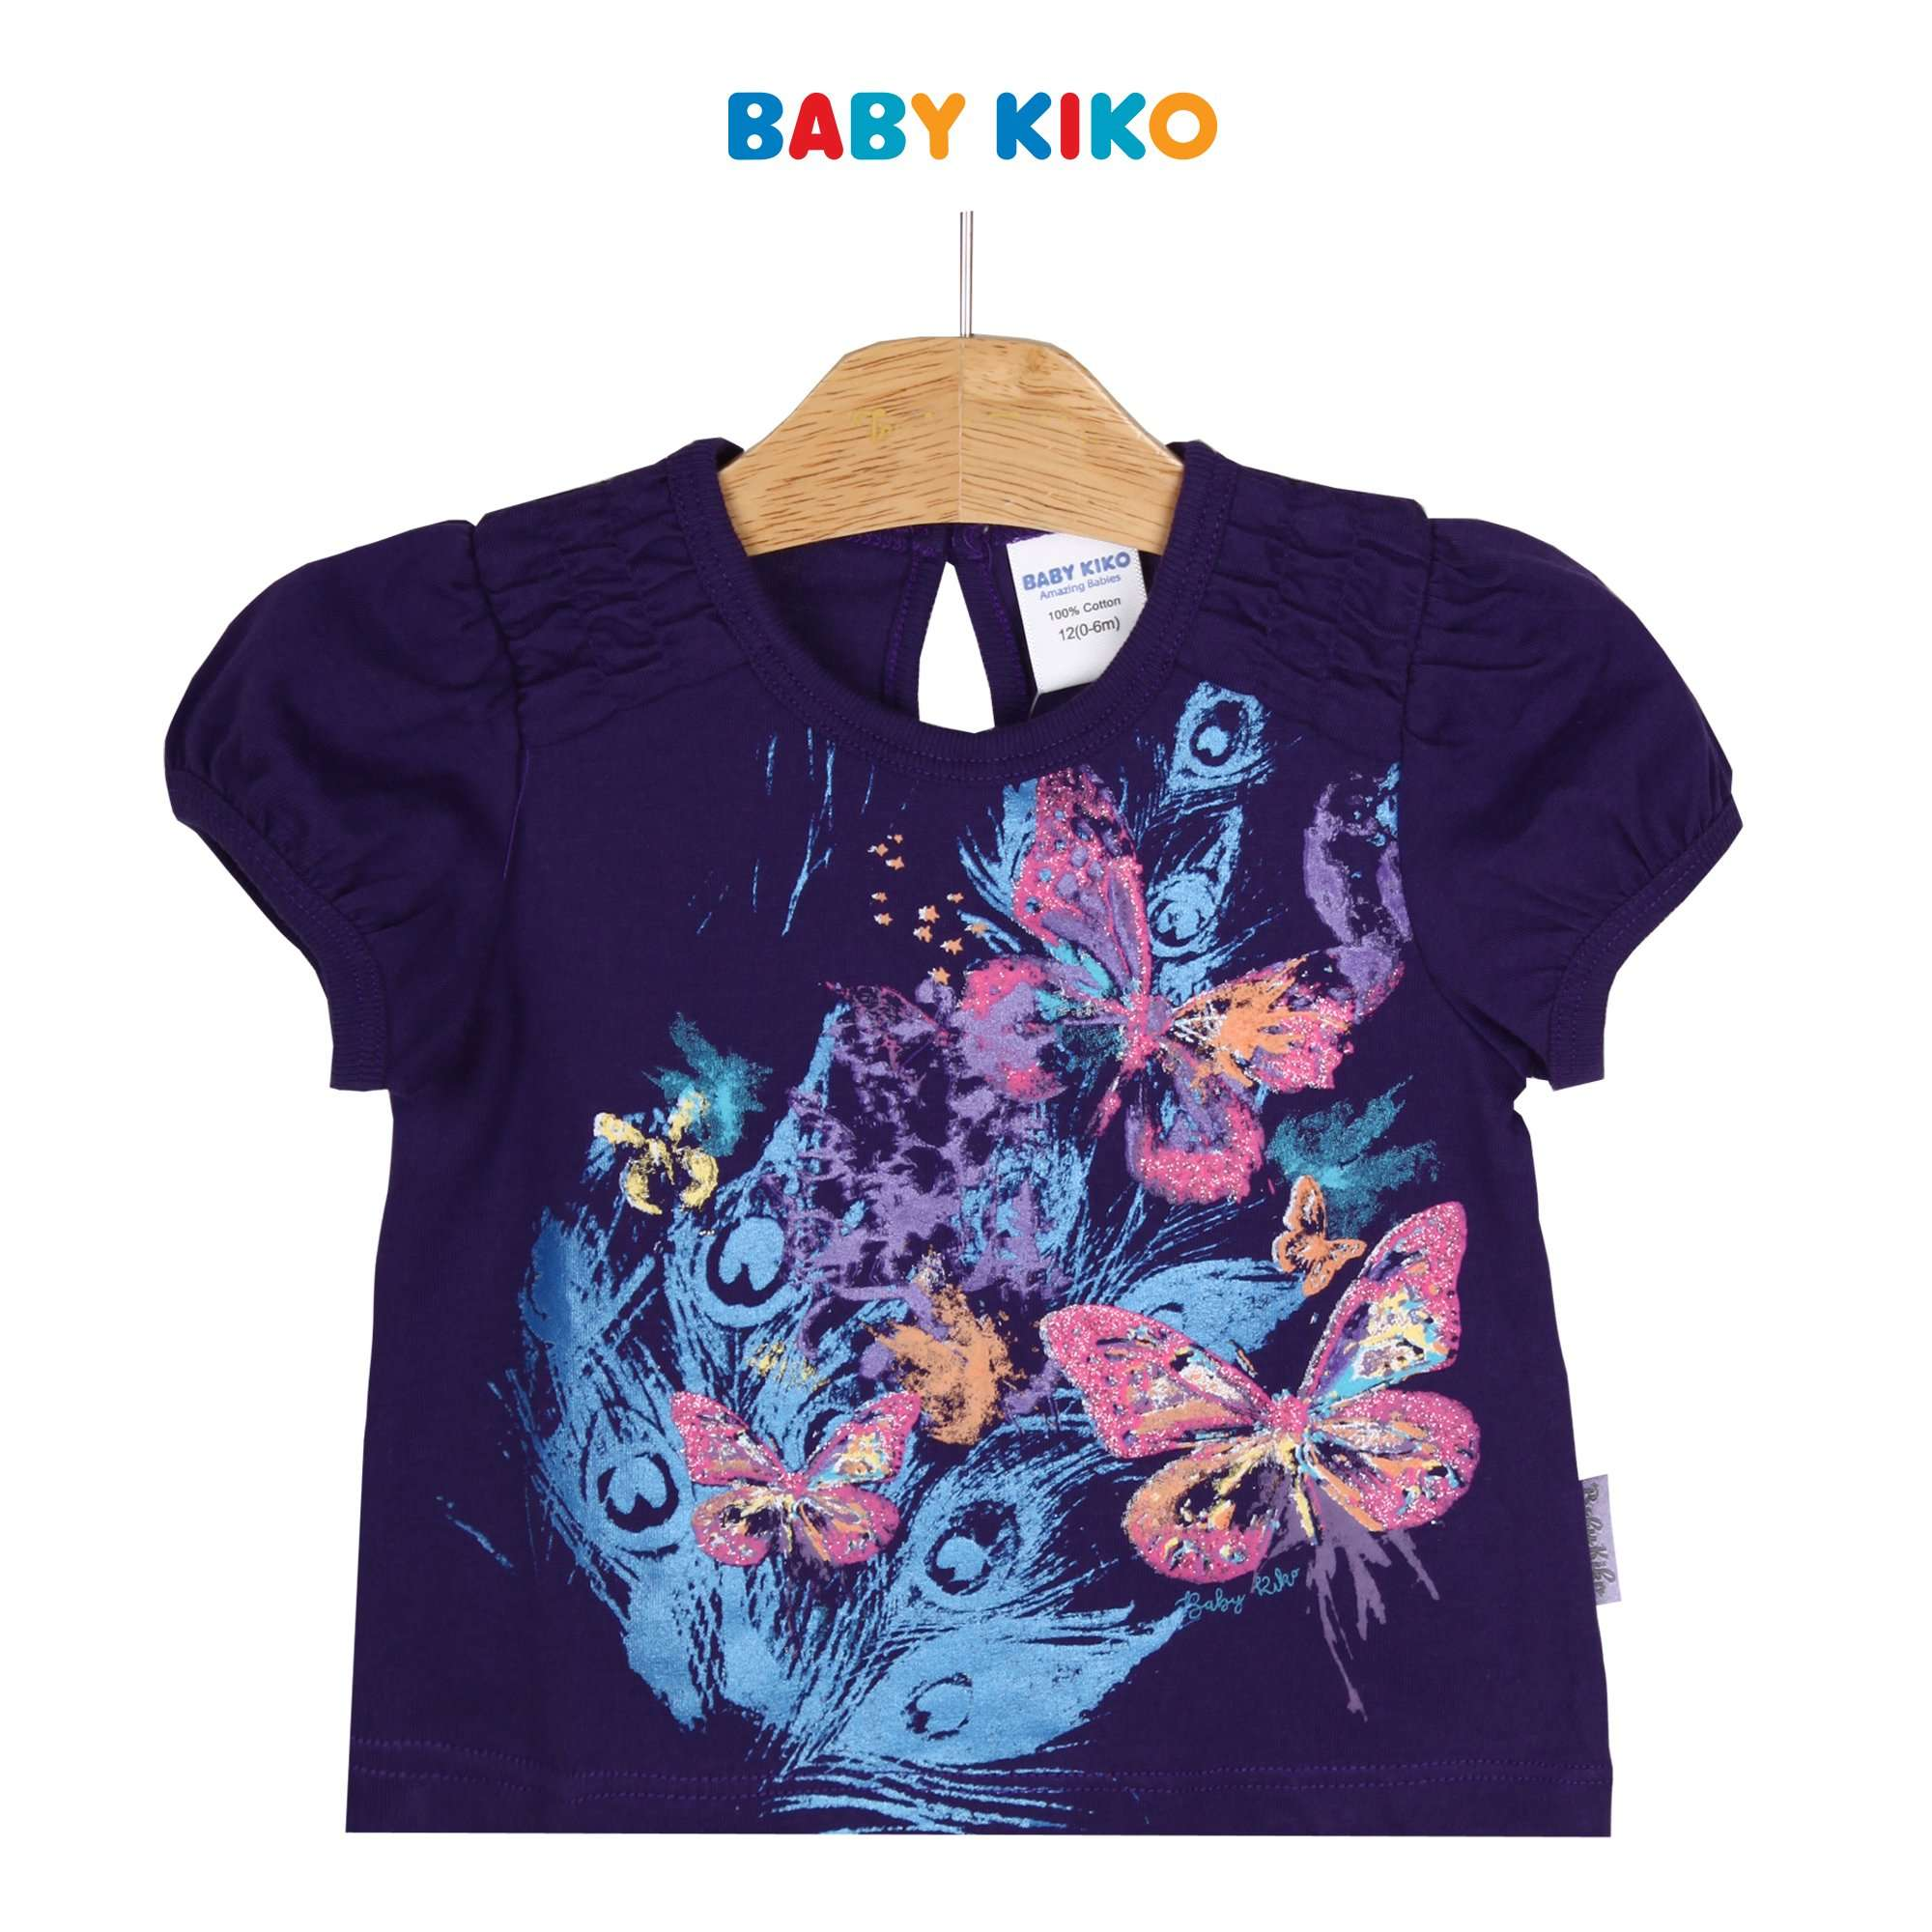 Baby KIKO Baby Girl Short Sleeve Tee - 330070-111 : Buy Baby KIKO online at CMG.MY